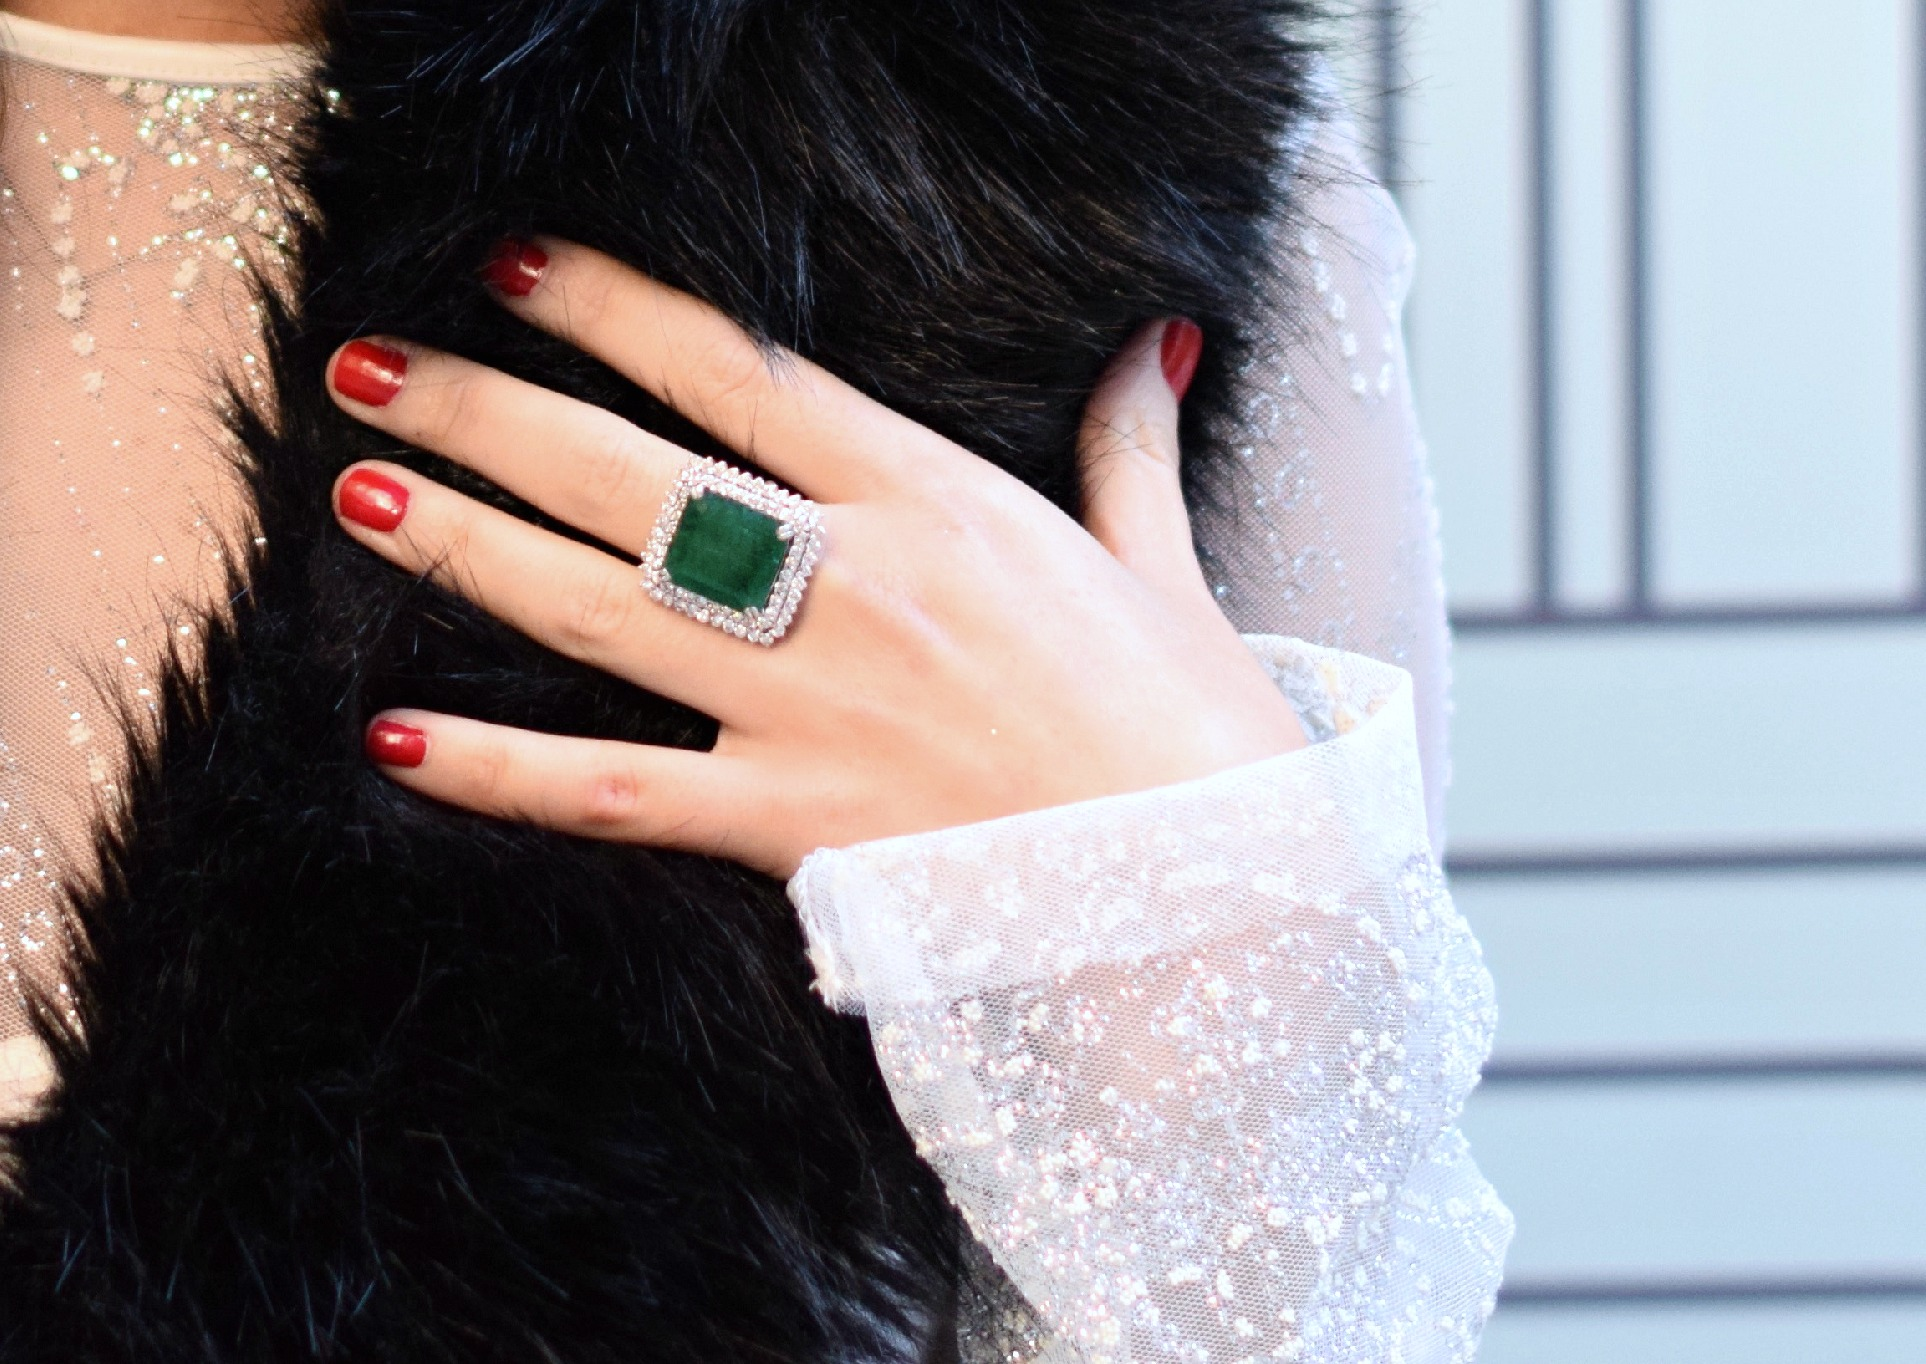 Holiday Look White Glitter Dress Elahn Jewels Louboutins & Love Fashion Blog Esther Santer NYC Street Style Blogger Diamond Rings Earrings Emerald Beautiful Fine Jewelry Girl Women Shopping Model Happiness Boutique  Outfit Inspo OOTD Shoes Black Heels.jpg